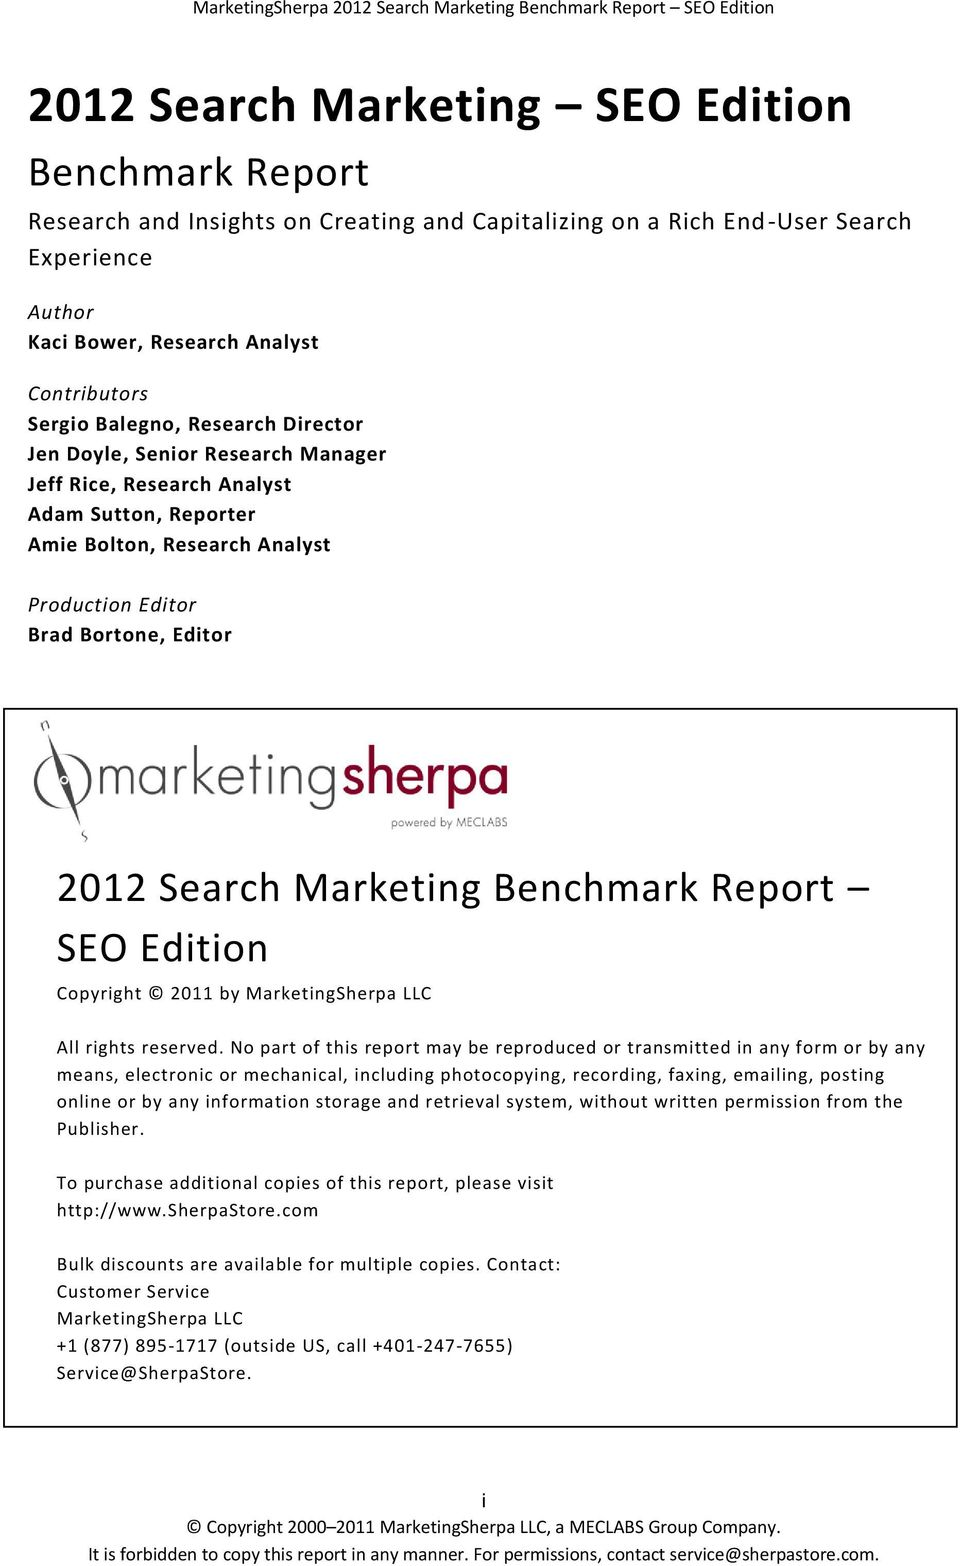 Marketing Benchmark Report SEO Edition Copyright 2011 by MarketingSherpa LLC All rights reserved.